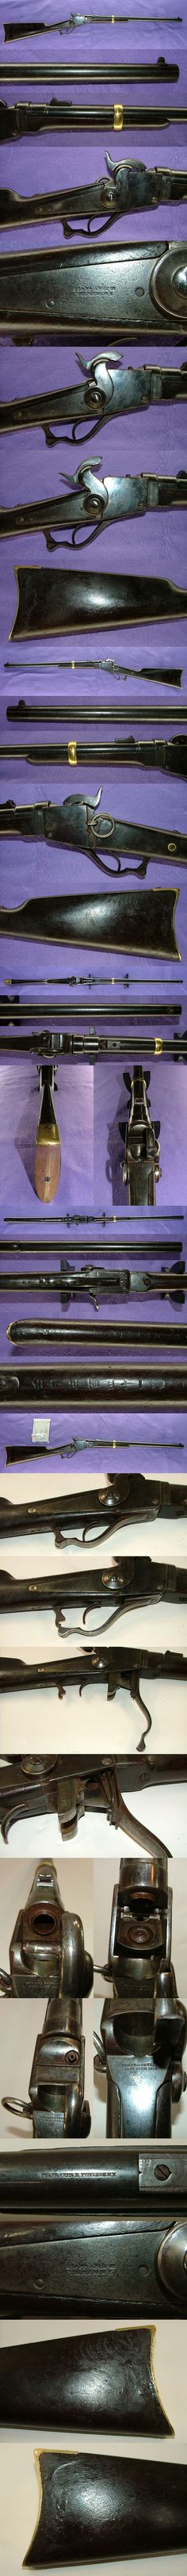 Starr carbine (U.S.), used by samurai during the late edo period.